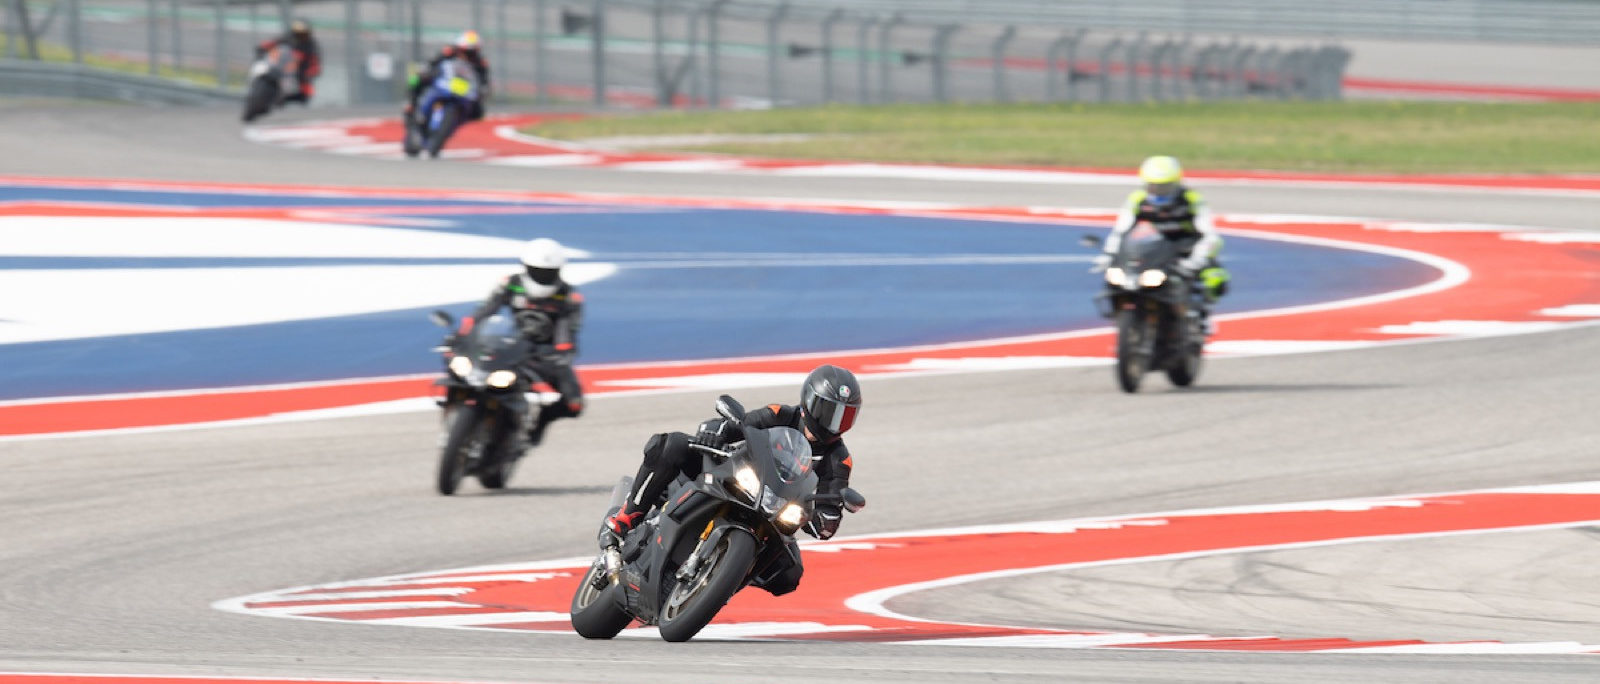 Action from an Aprilia Racers Day at Circuit of The Americas. Photo courtesy of Aprilia USA.